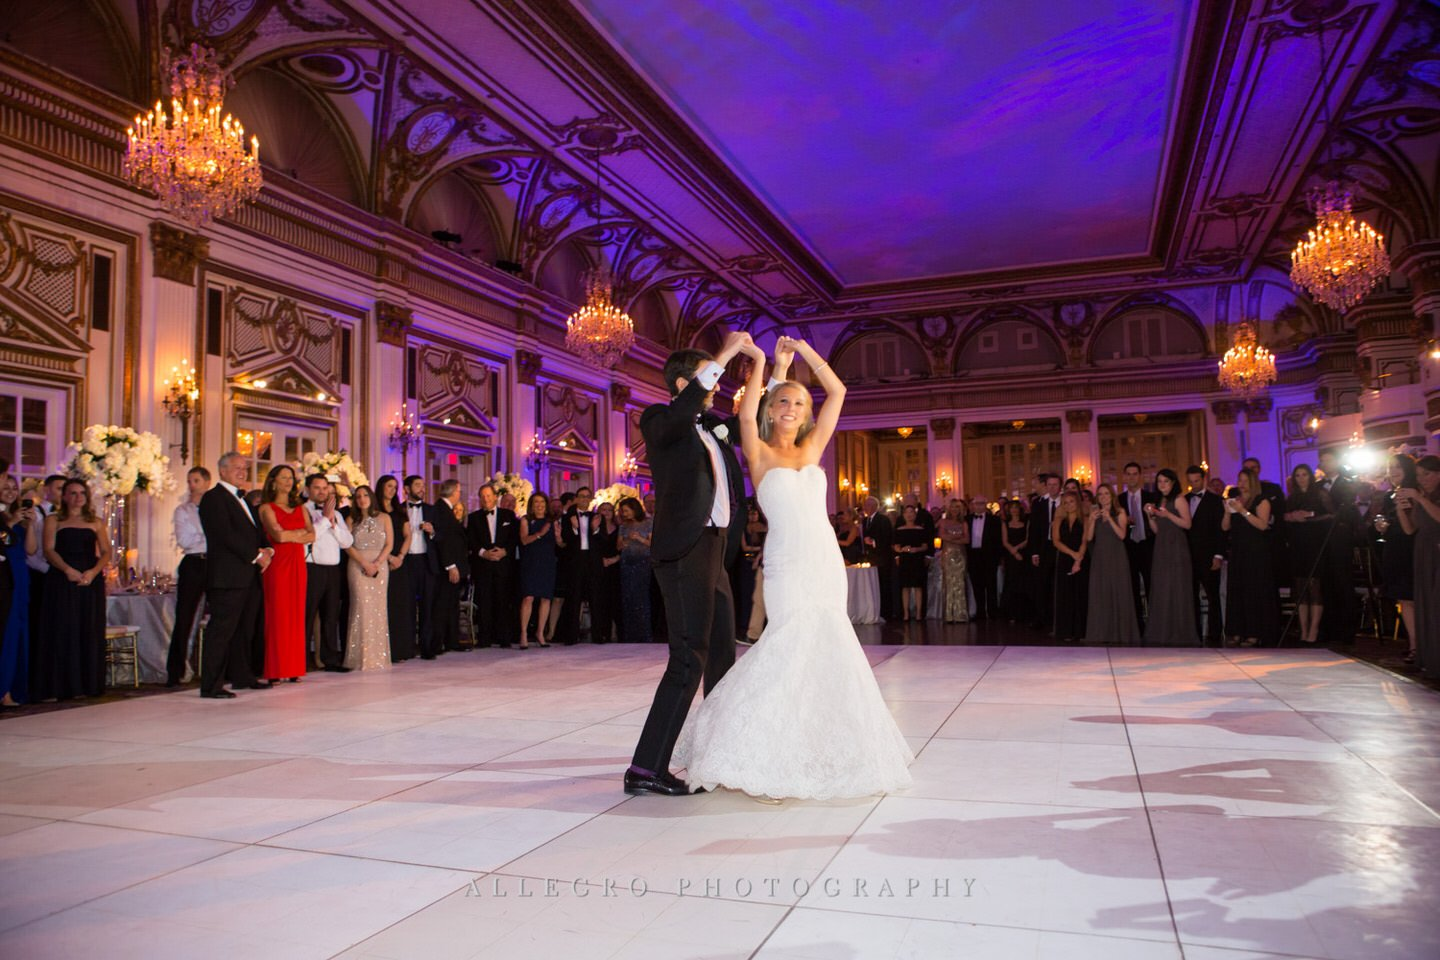 fairmont copley plaza wedding photo by Allegro Photography